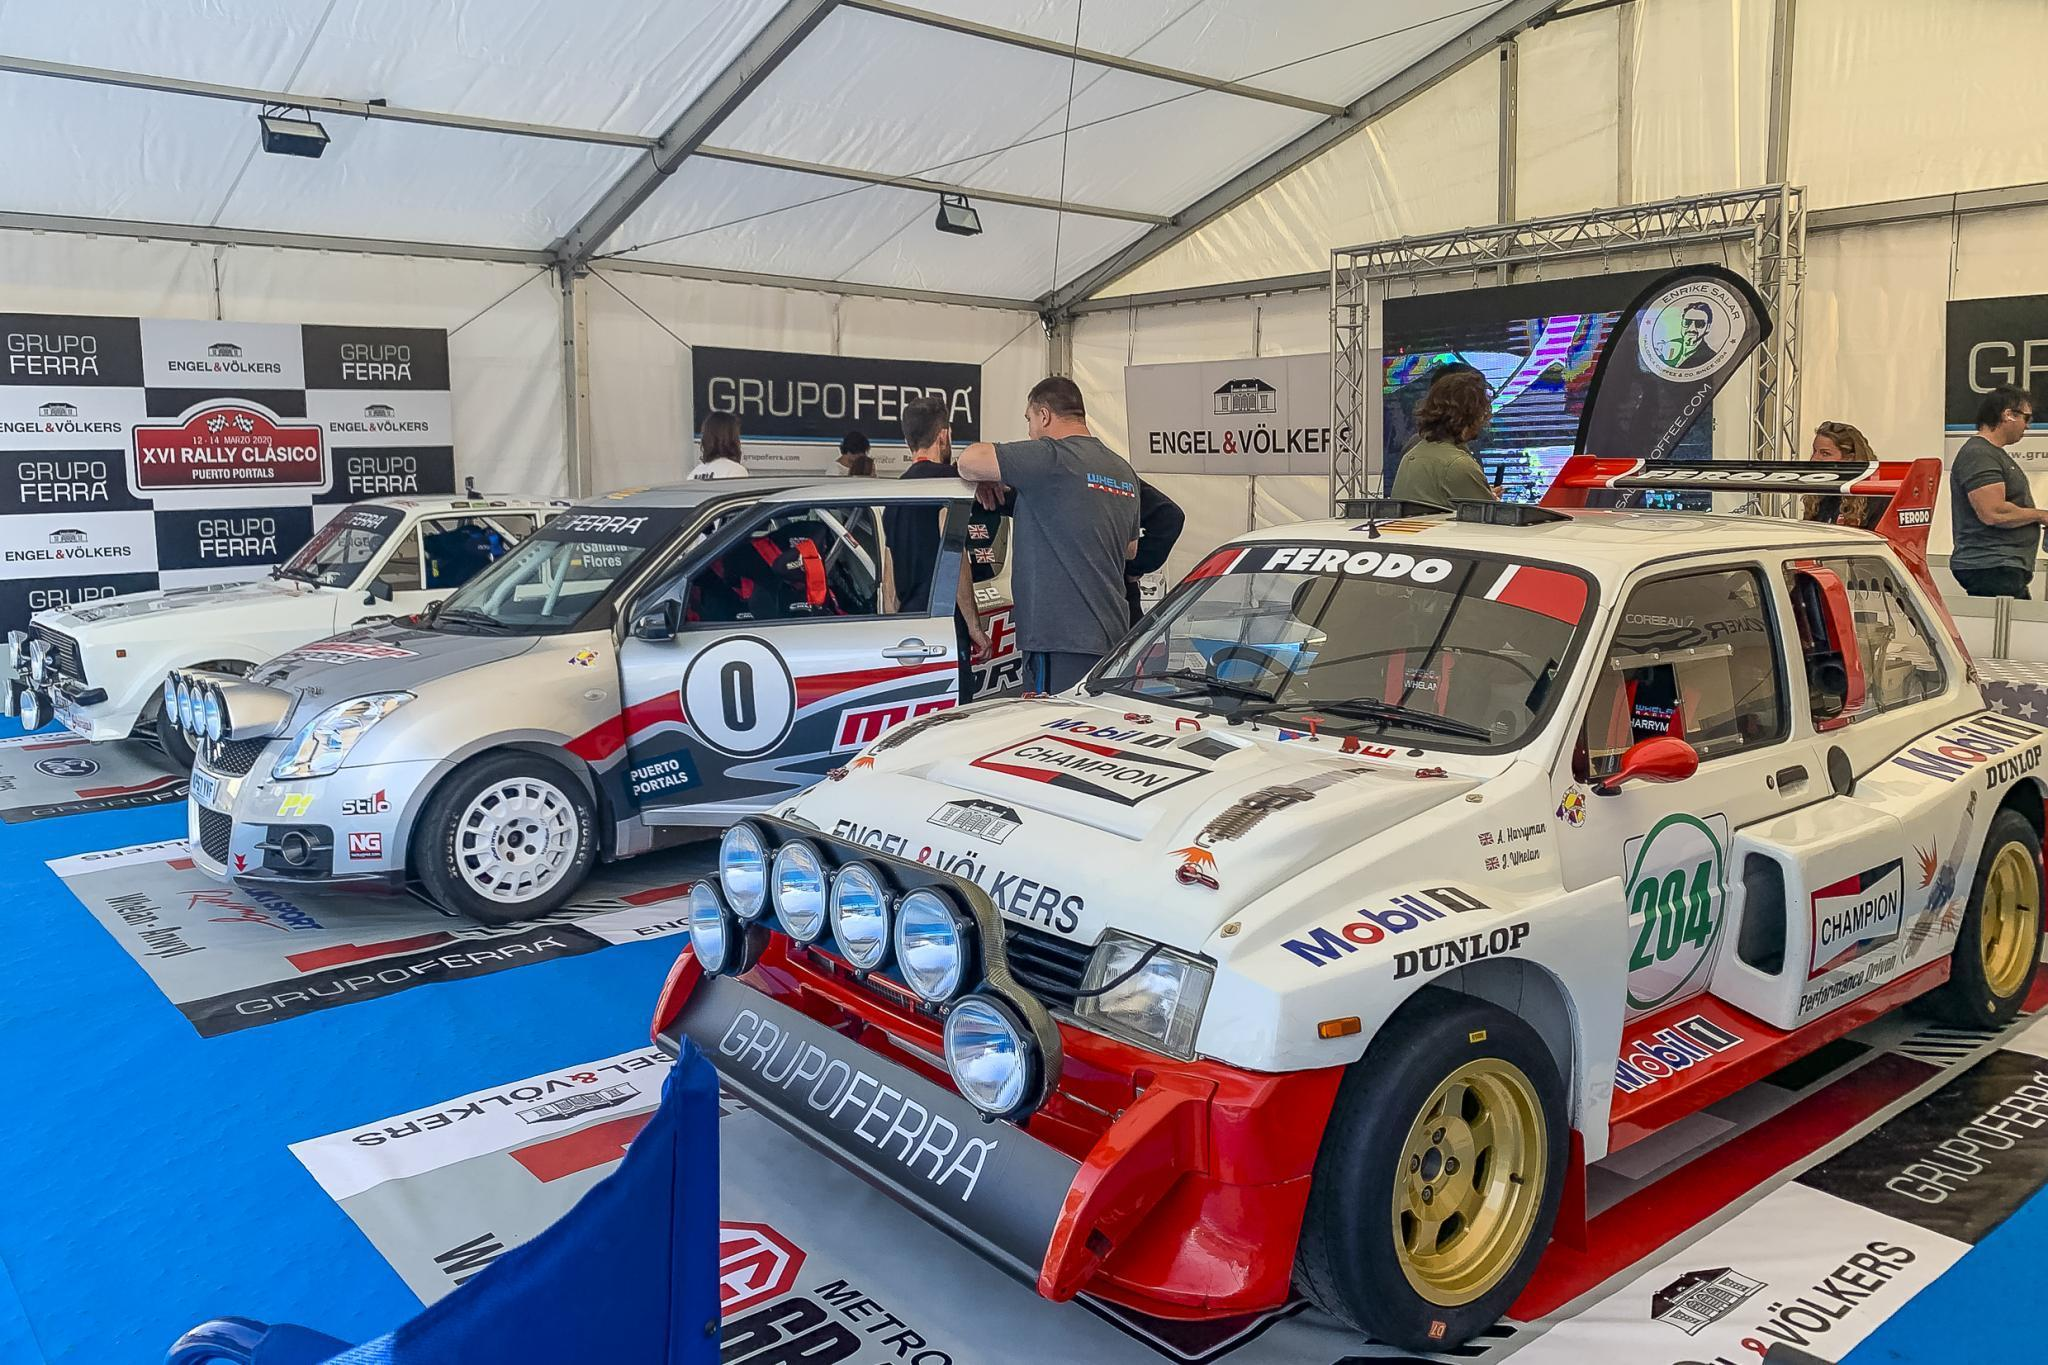 Serious looking pits for serious looking cars, Mini Metro 6R4, Suzuki and Ford Escort.